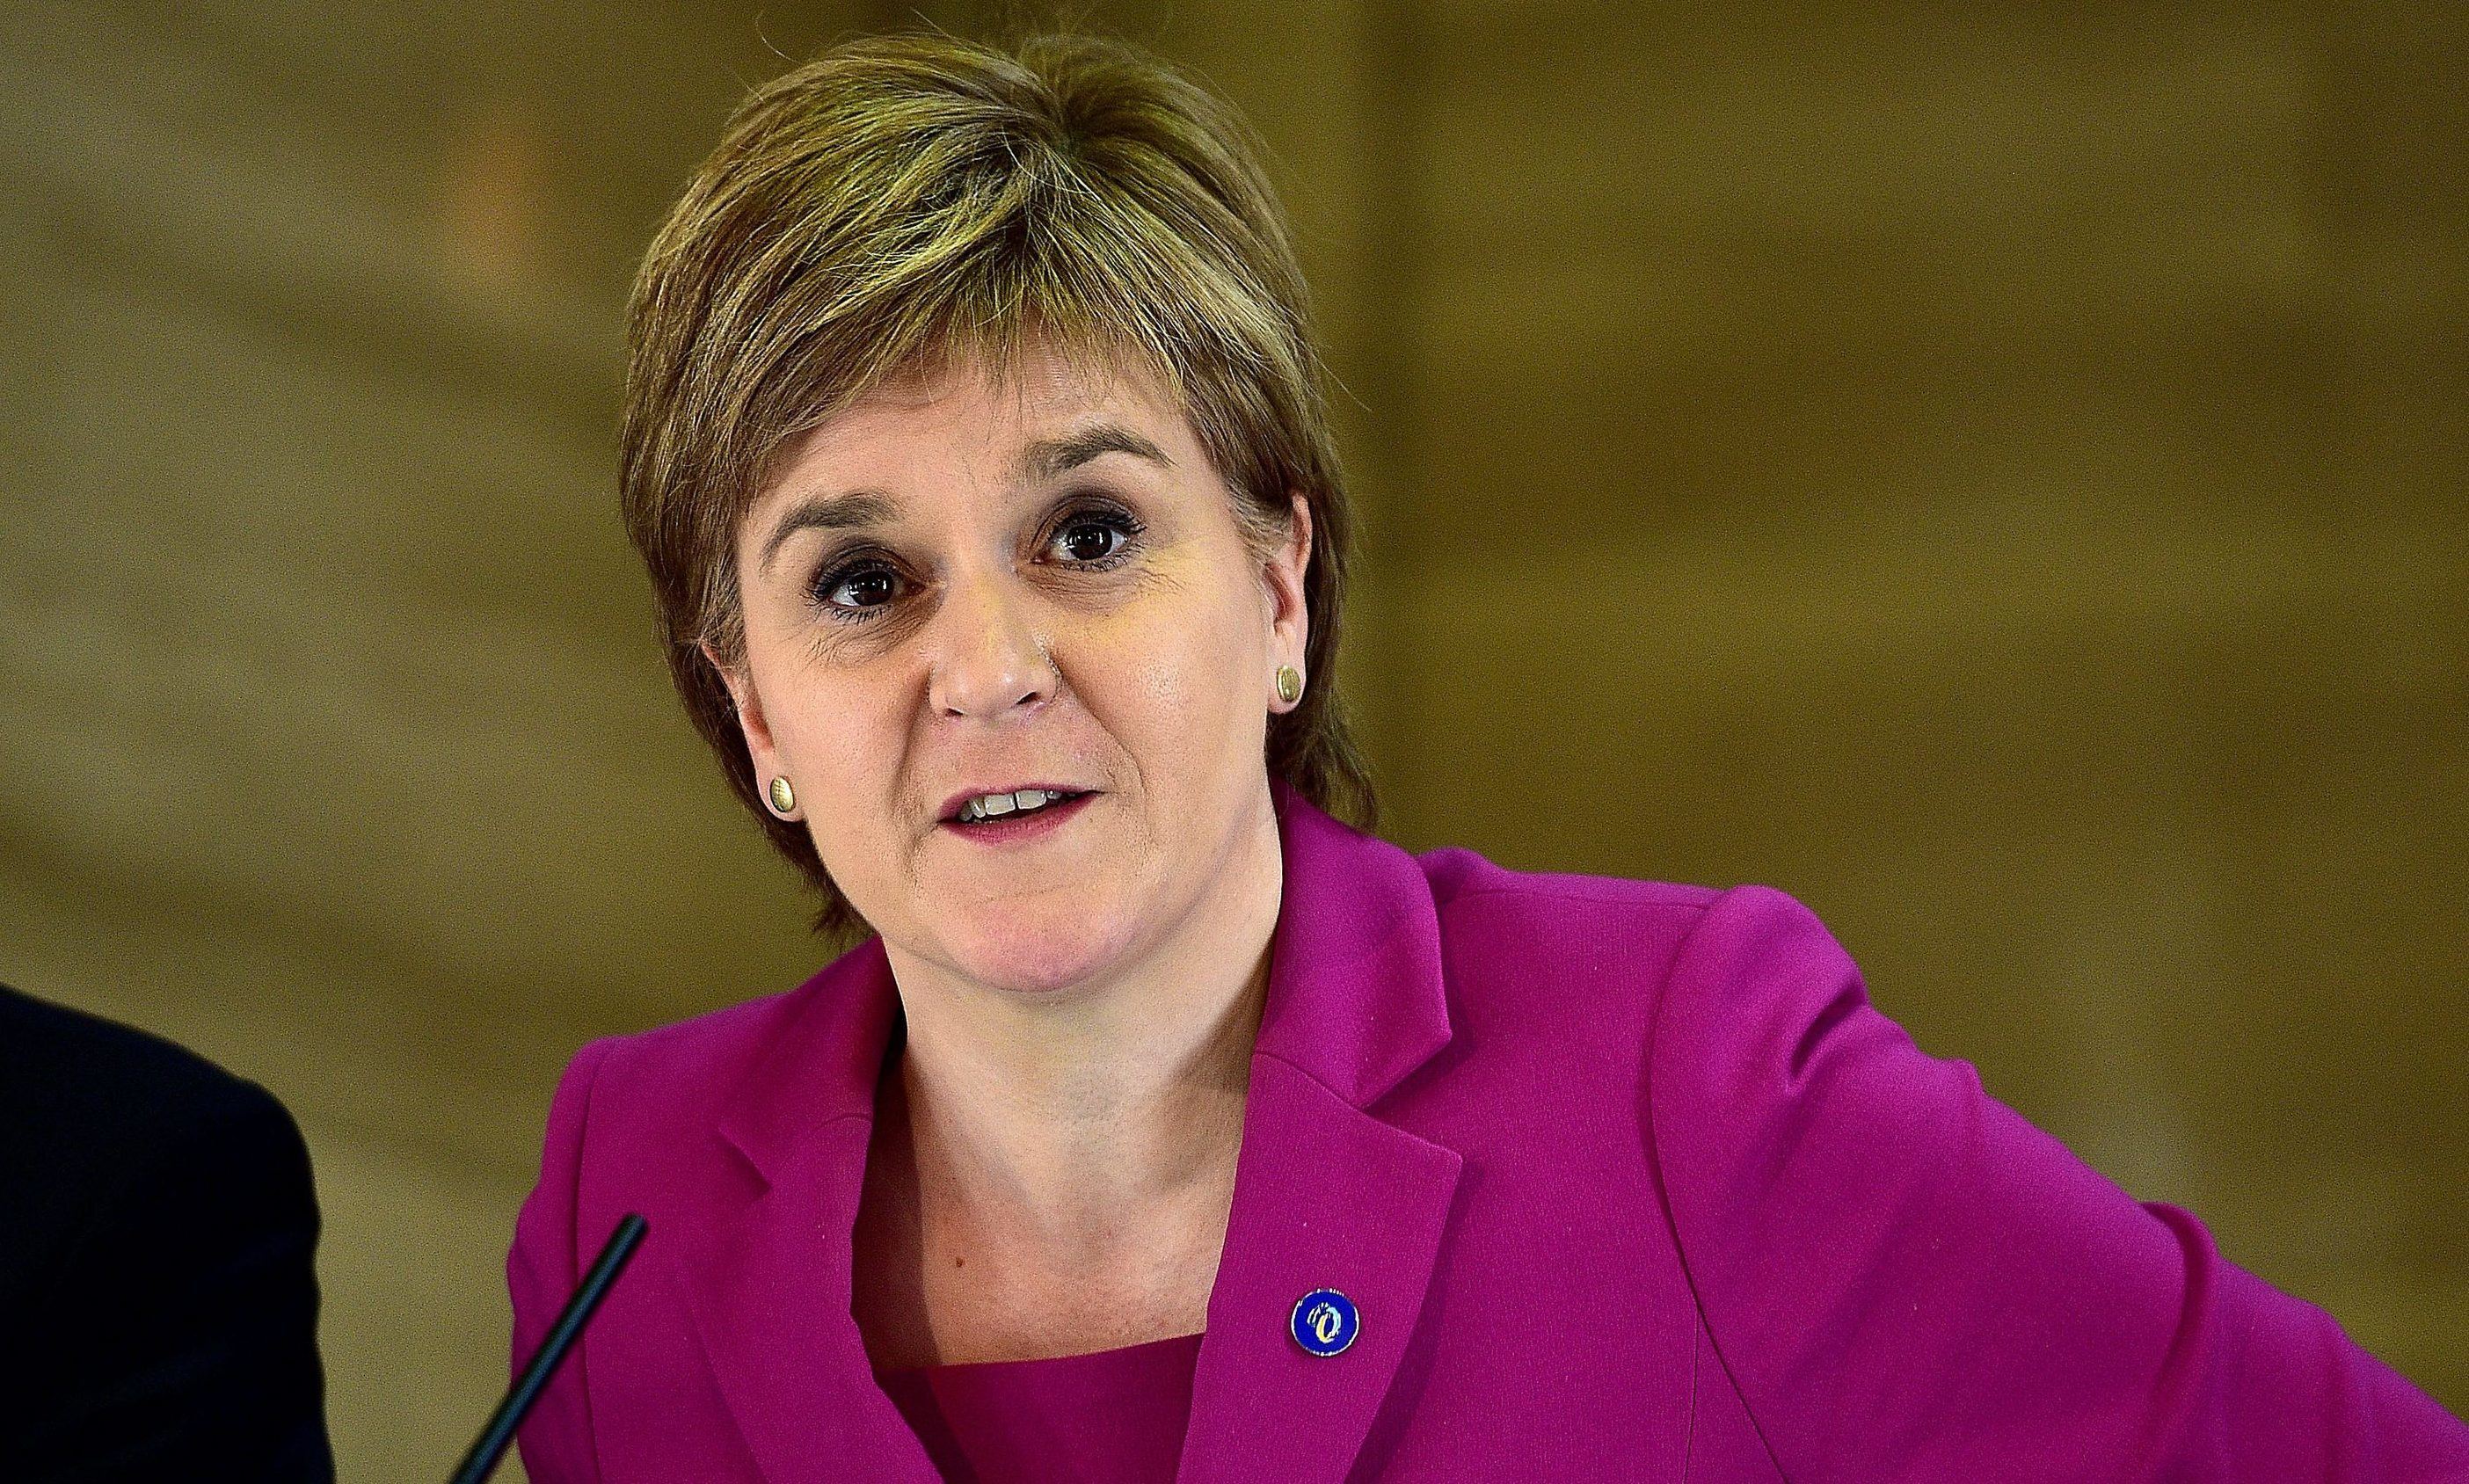 Scottish Independence Is Only A Matter Of Time, Says Nicola Sturgeon